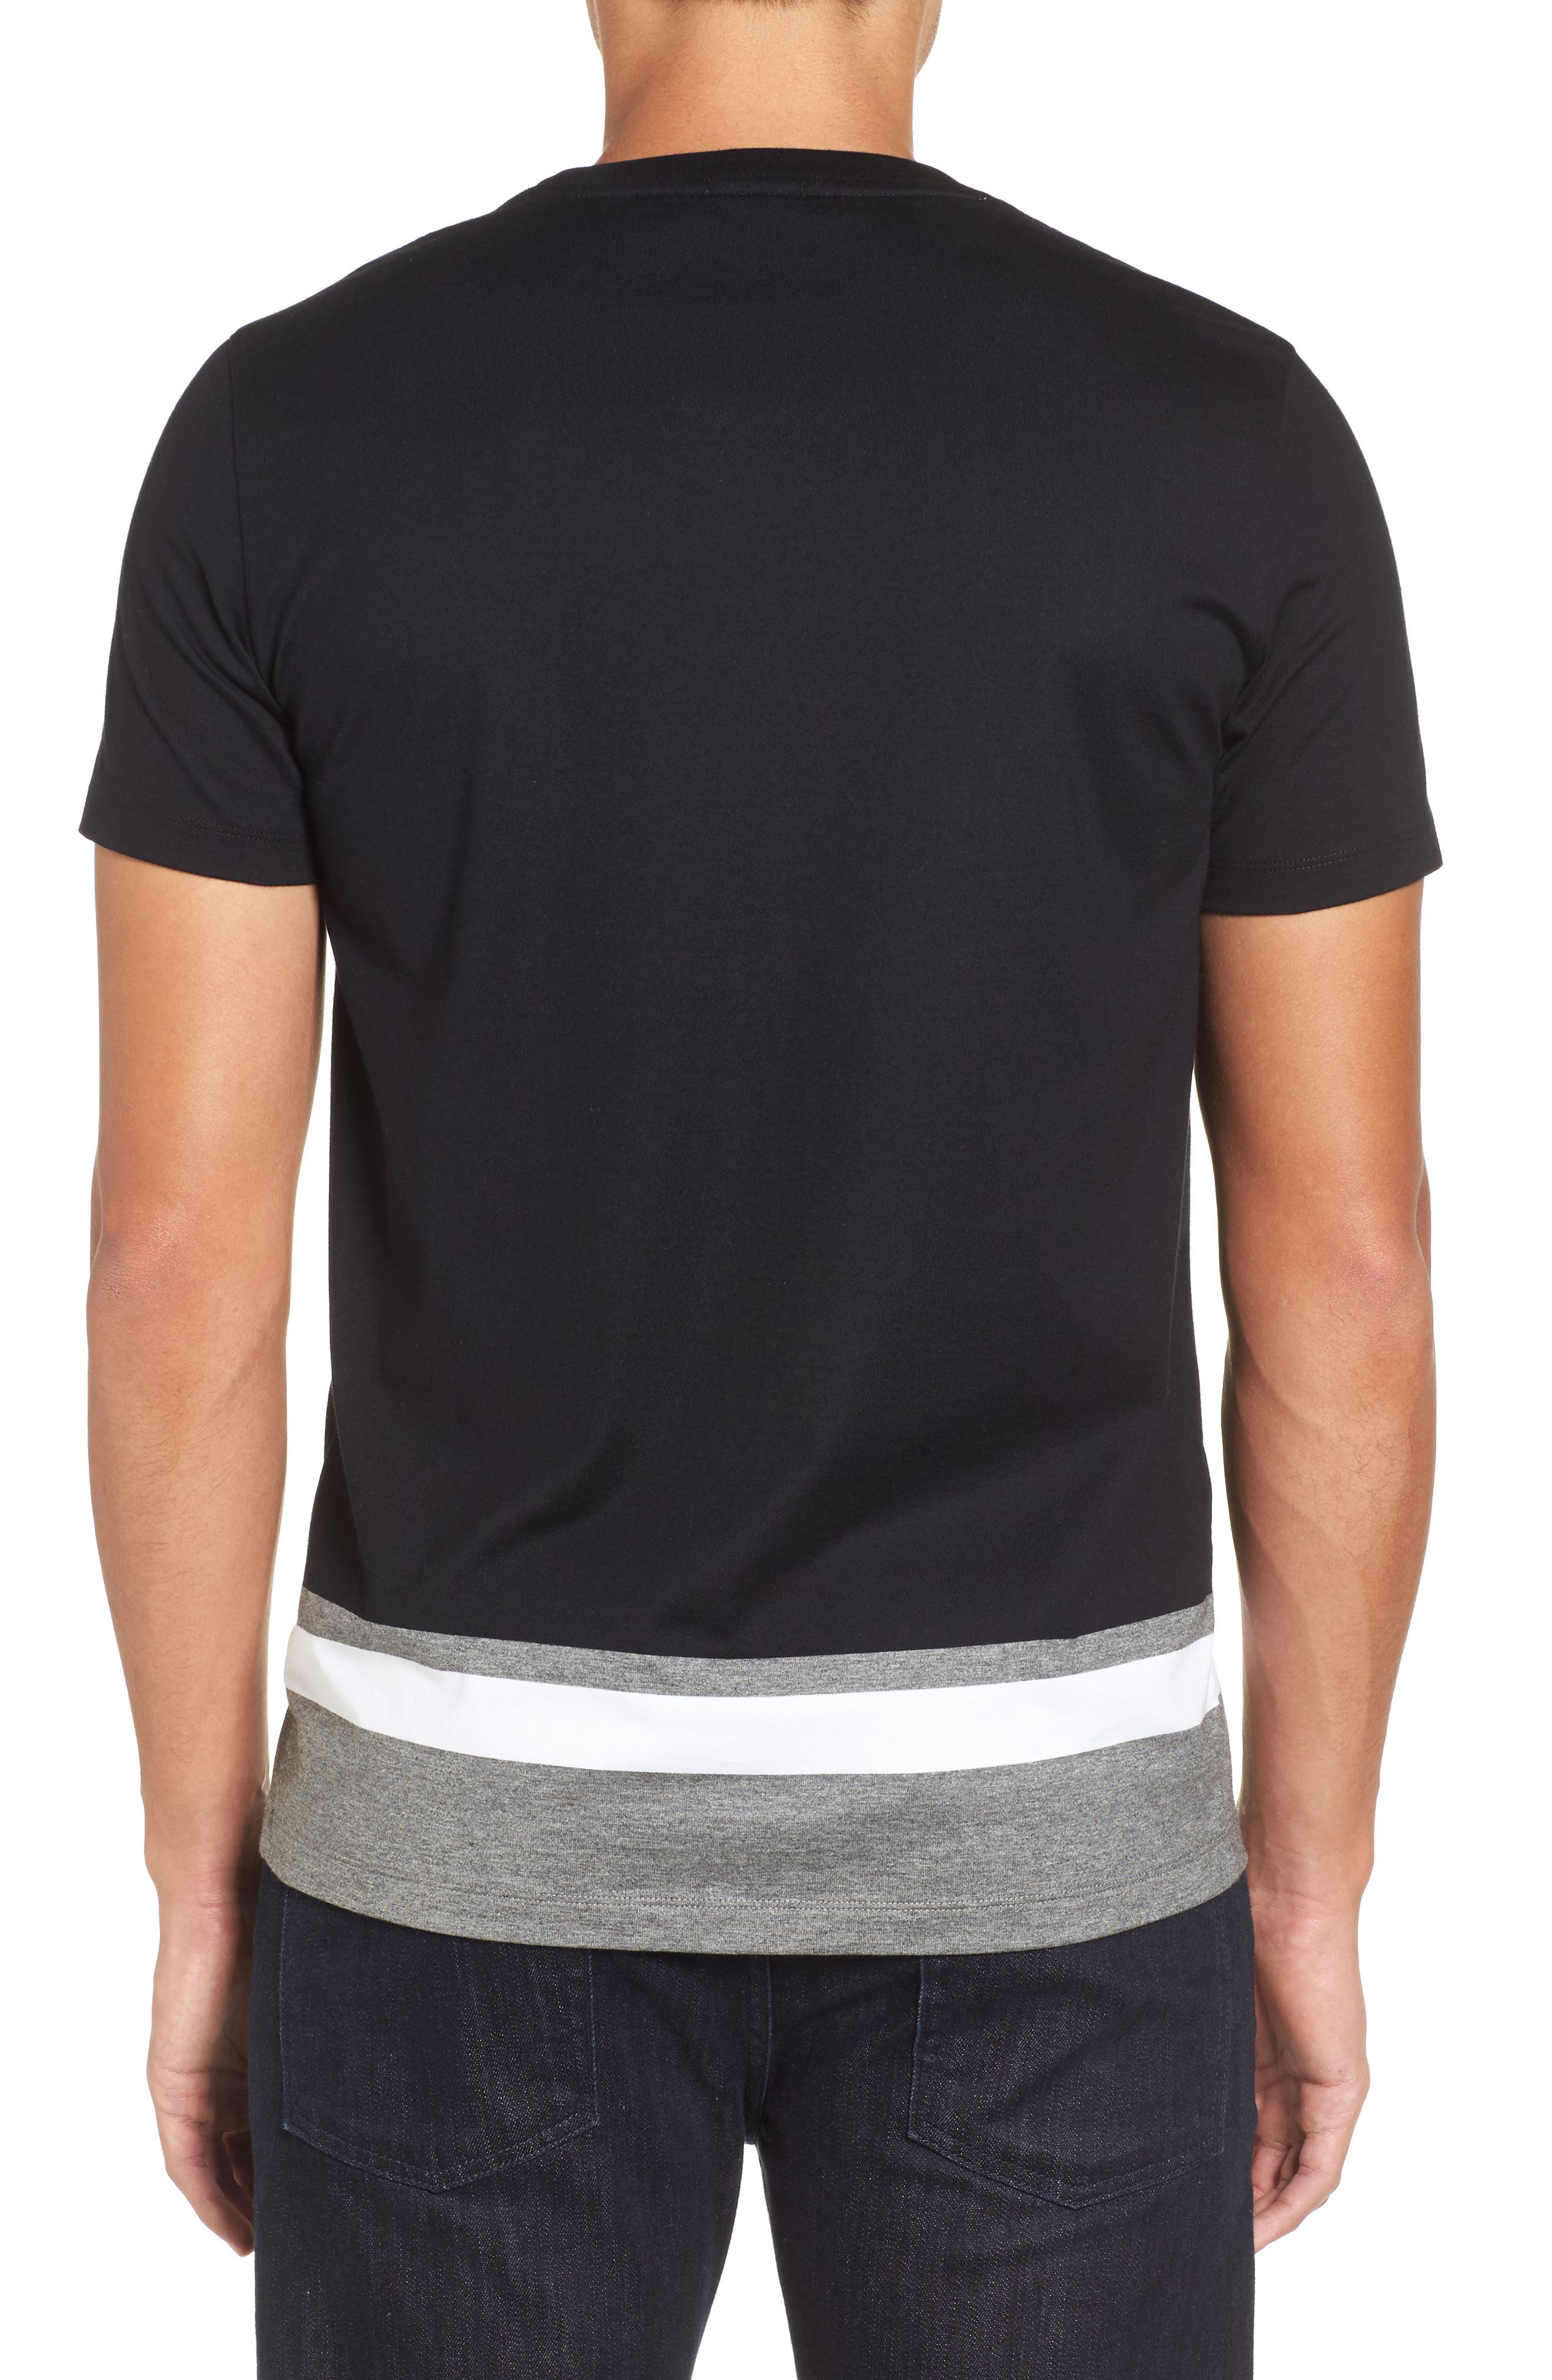 Tiburt Colorblock T-Shirt,                             Alternate thumbnail 2, color,                             001